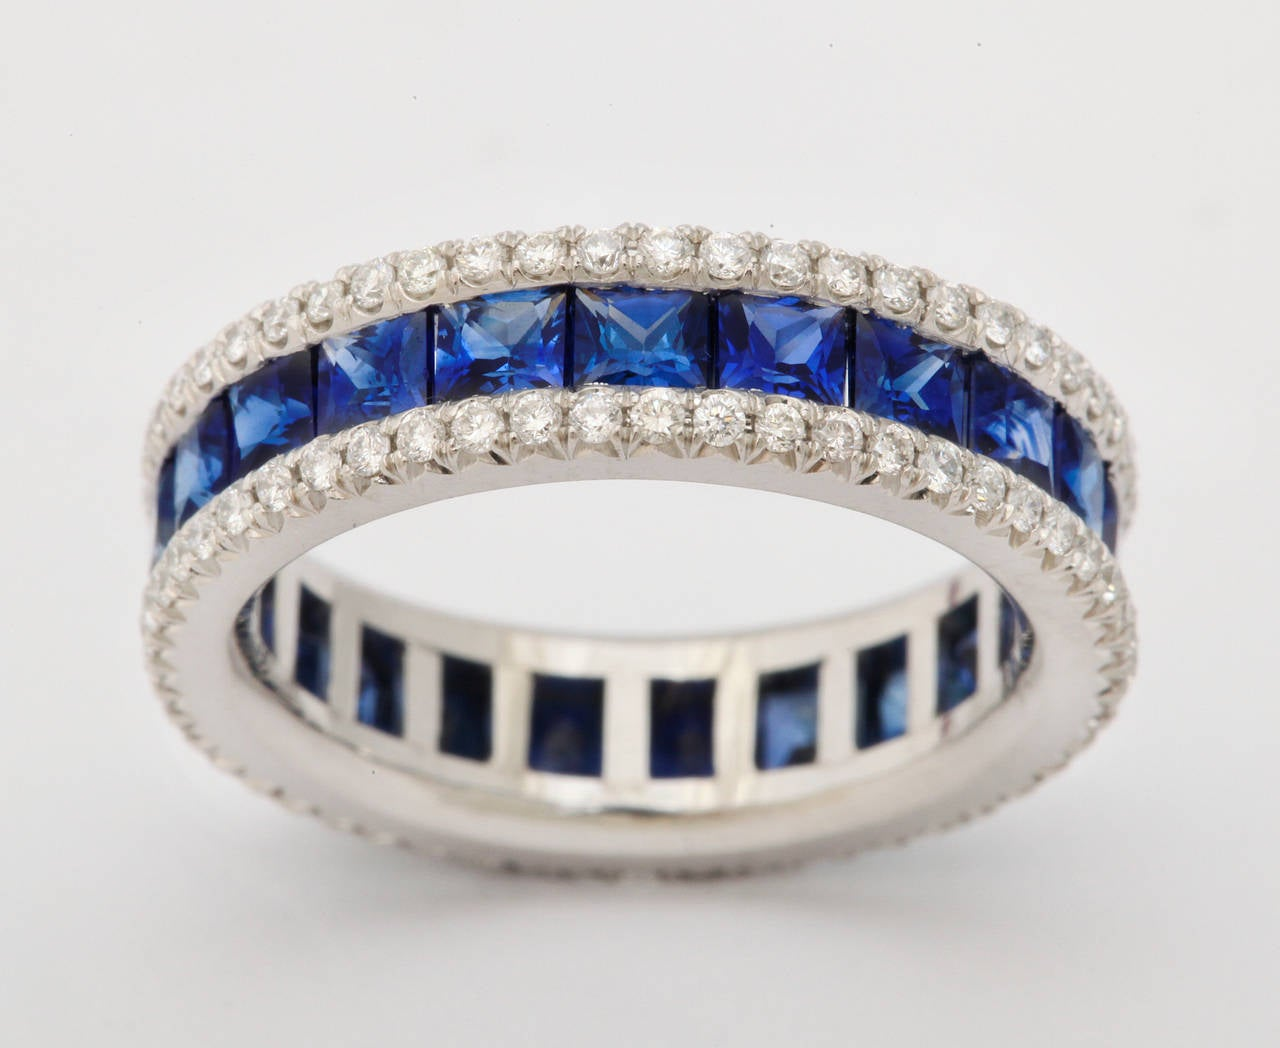 Sapphire Diamond Platinum Eternity Band Ring In As New Condition For Sale In Bal Harbour, FL